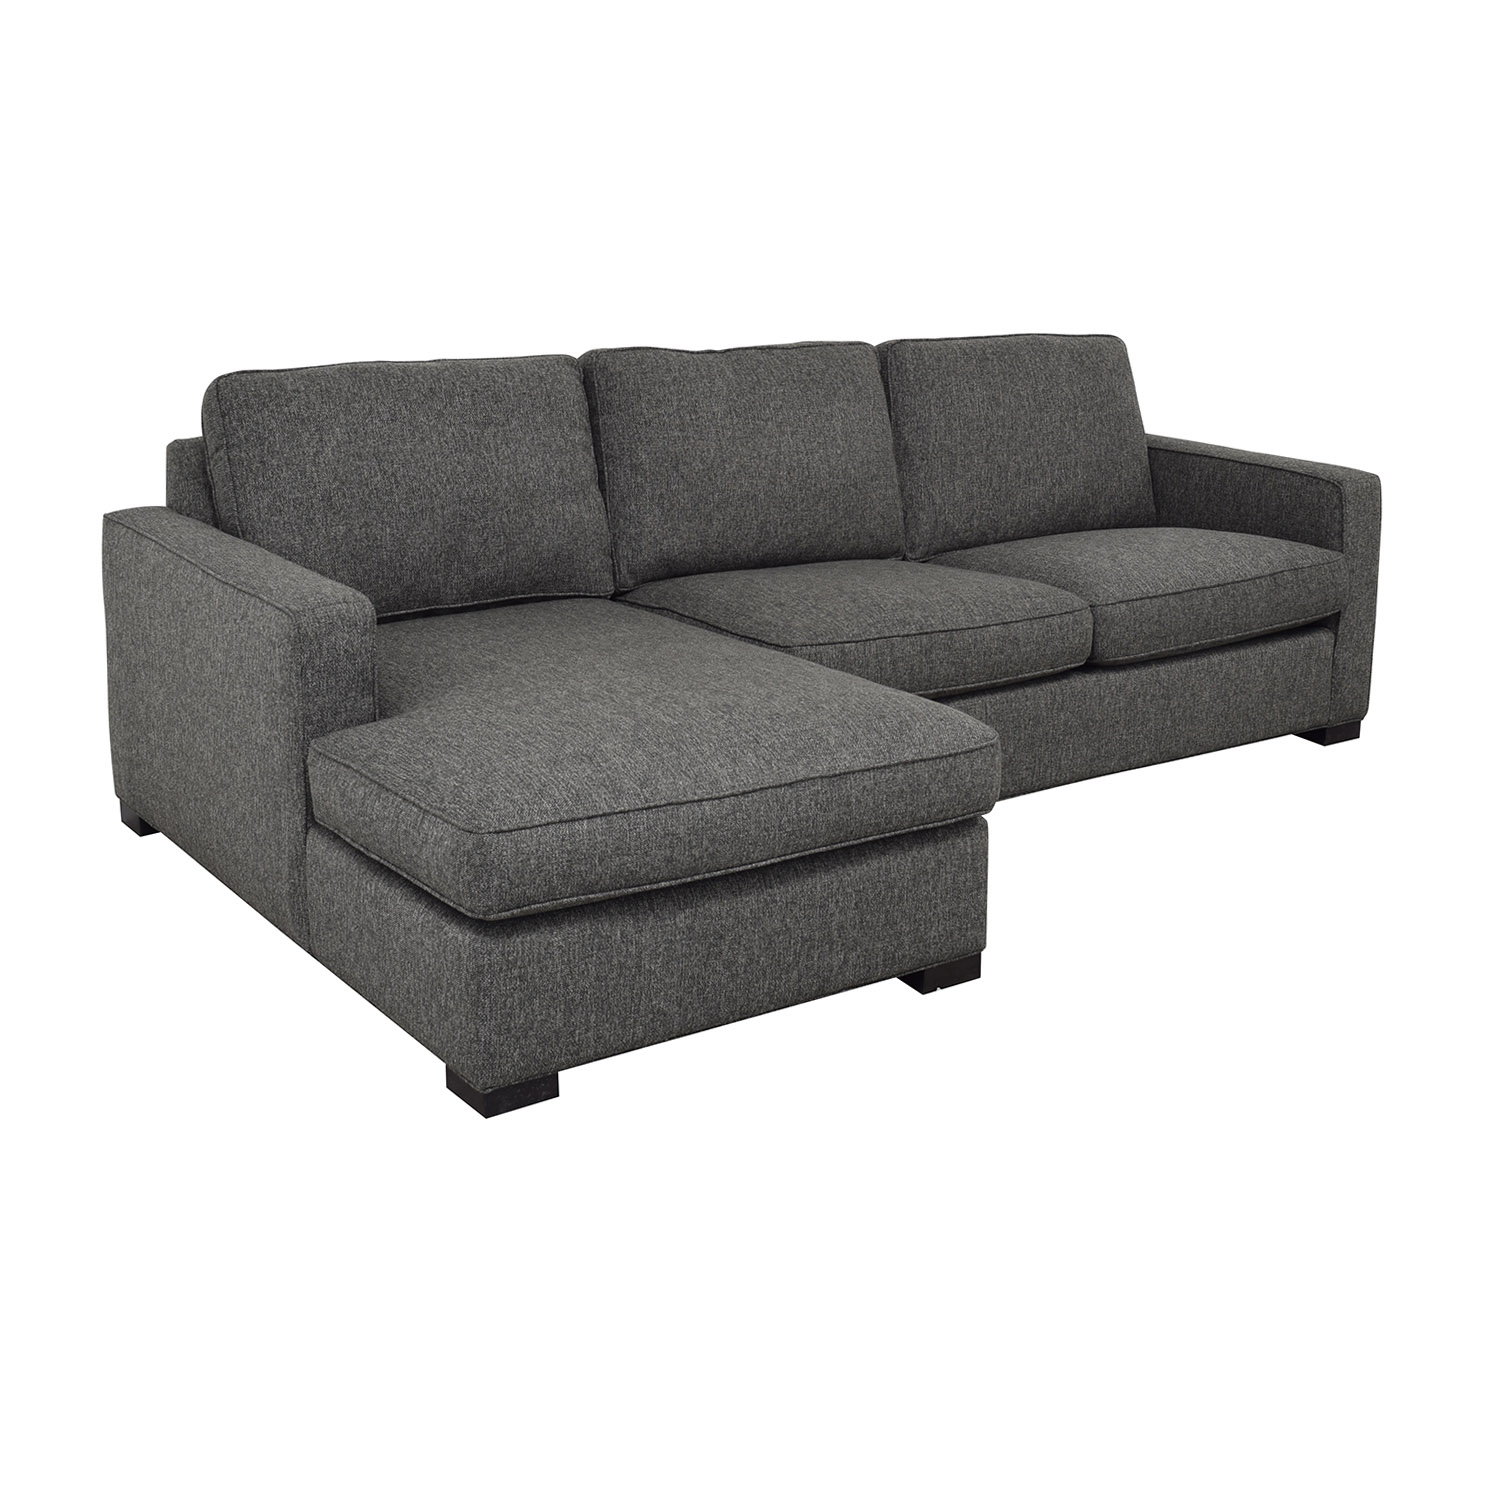 Room & Board Room & Board Morrison Sofa with Left-Arm Chaise for sale